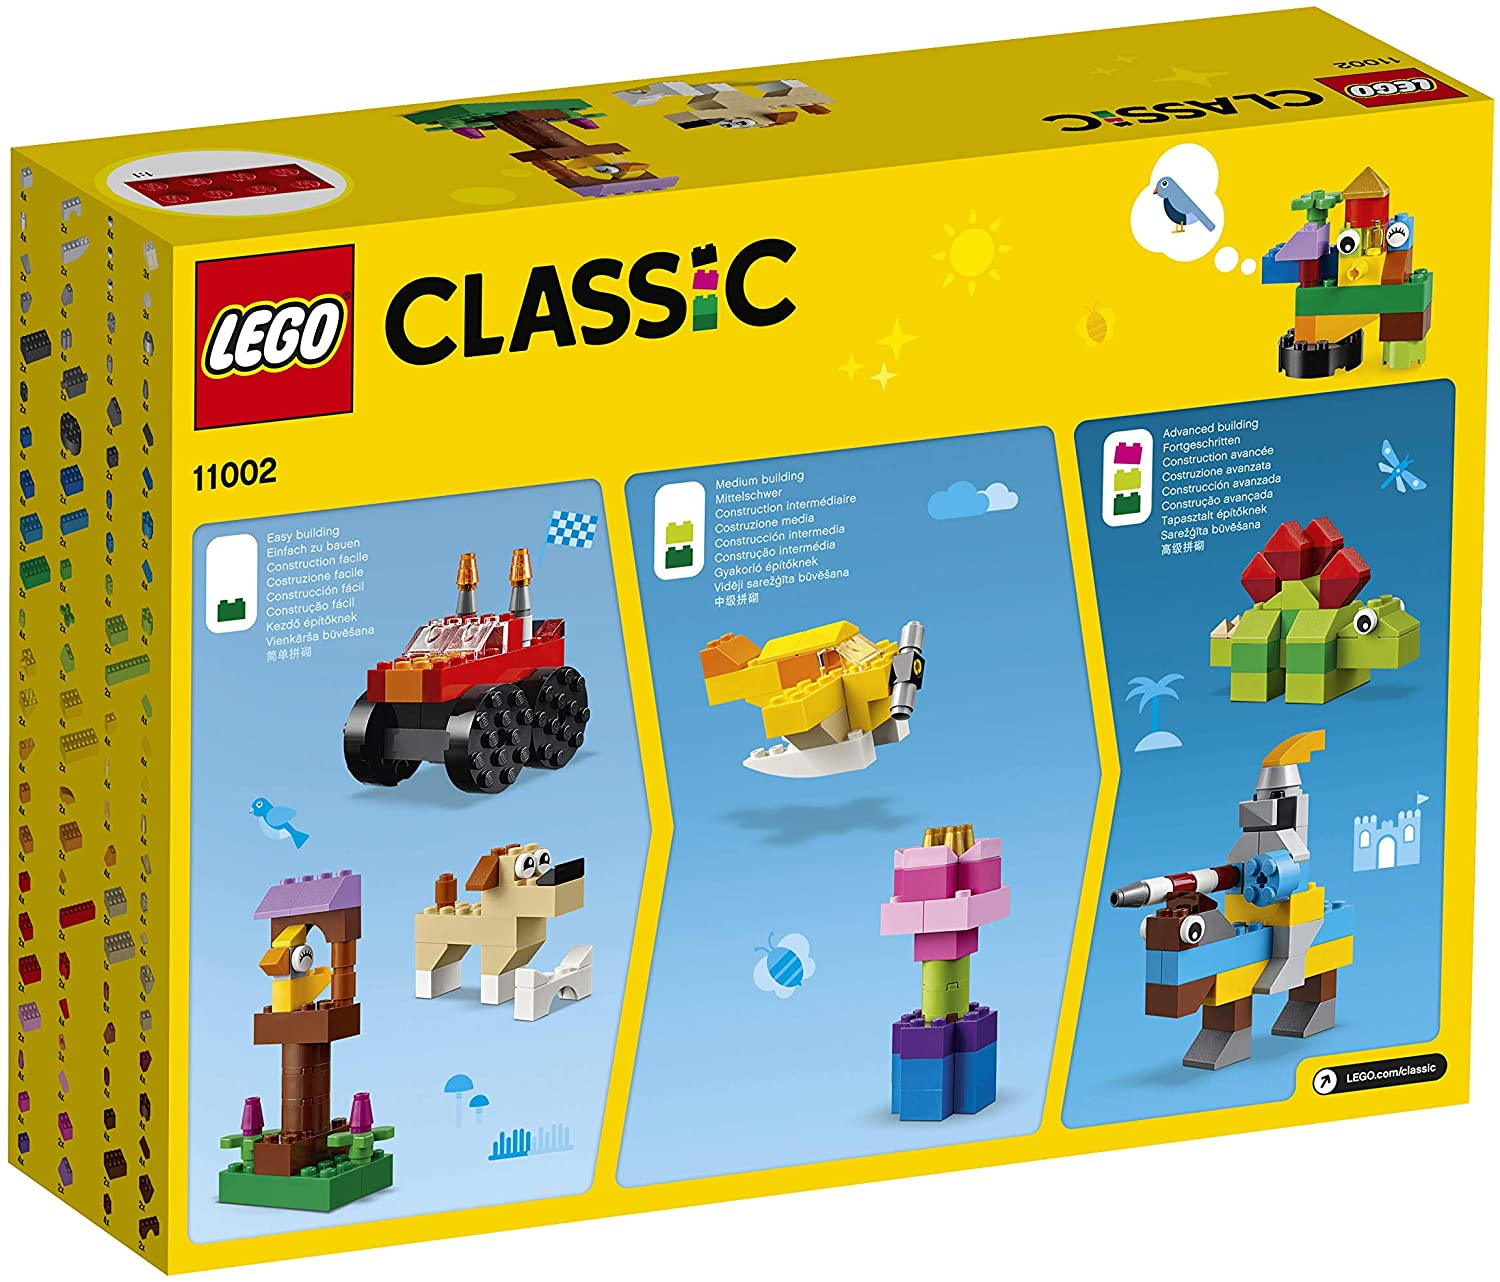 LEGO Classic basic bricks, didactic and creative building toy 25  25